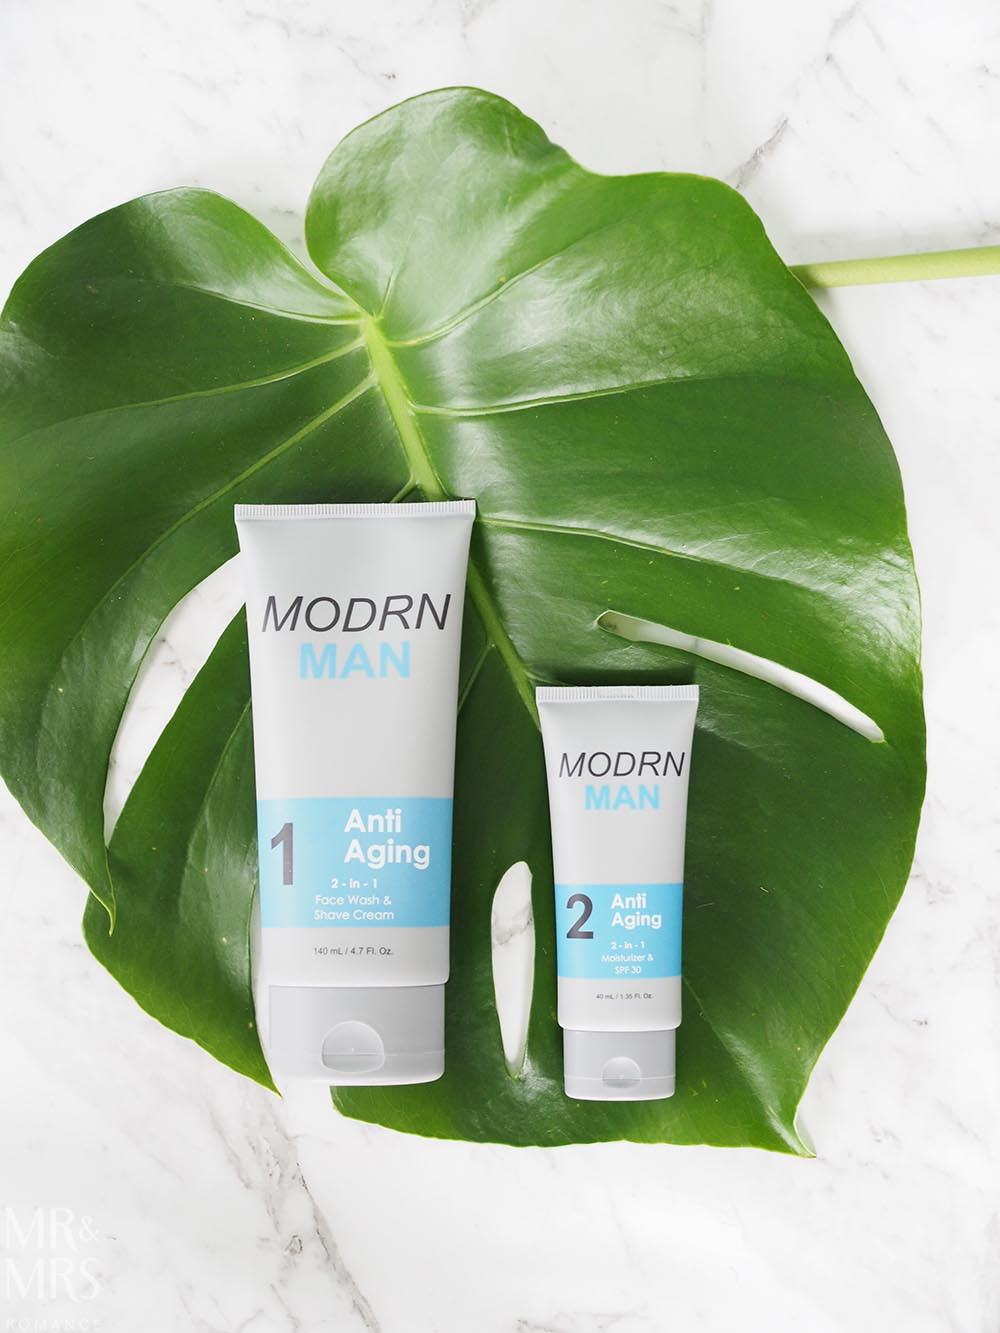 Skincare tips for men and skincare products for men - Modrn Man - MMR